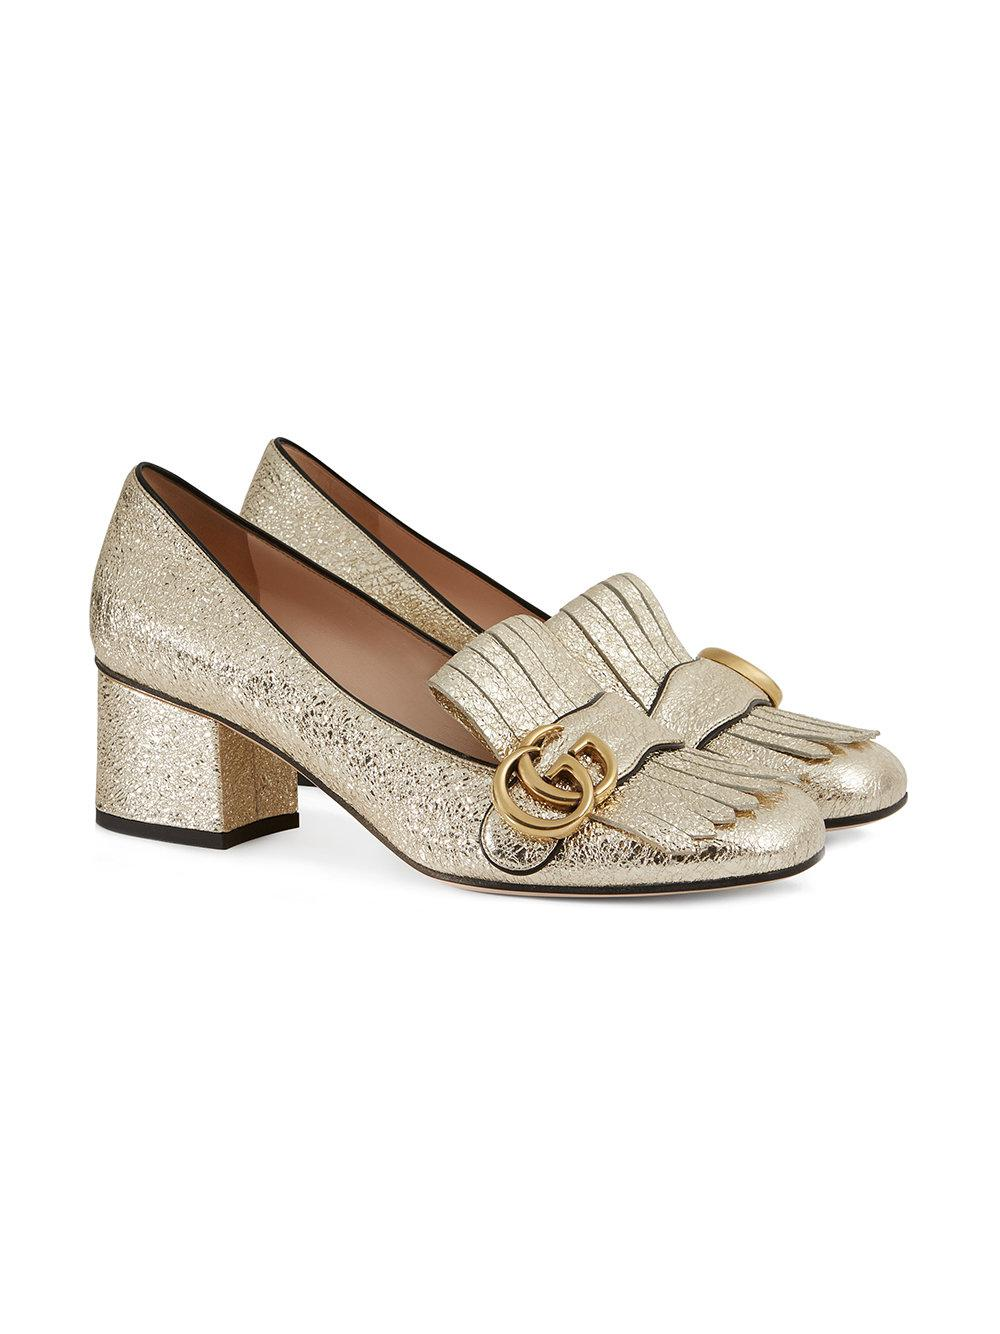 43cd29b37 Gucci Gold Marmont Leather Pumps in Metallic - Lyst